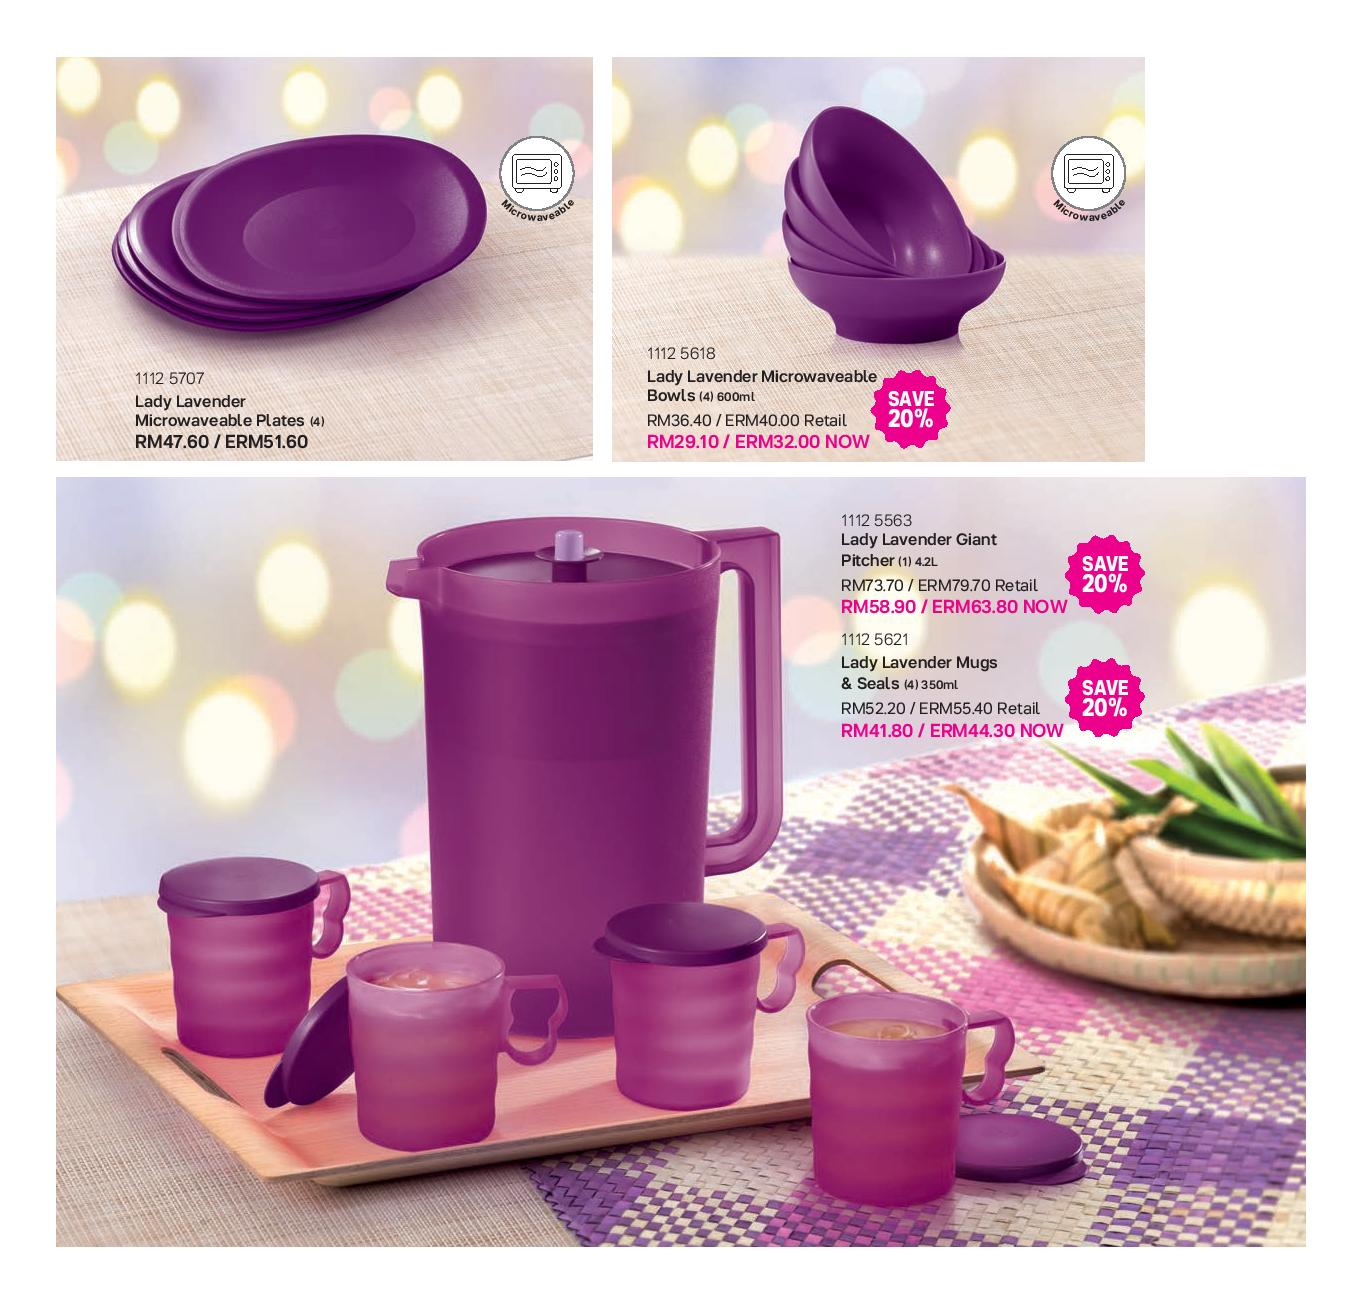 tupperware catalog 13 may 2016 30 june 2016 tupperware kakakshop tupperware malaysia. Black Bedroom Furniture Sets. Home Design Ideas